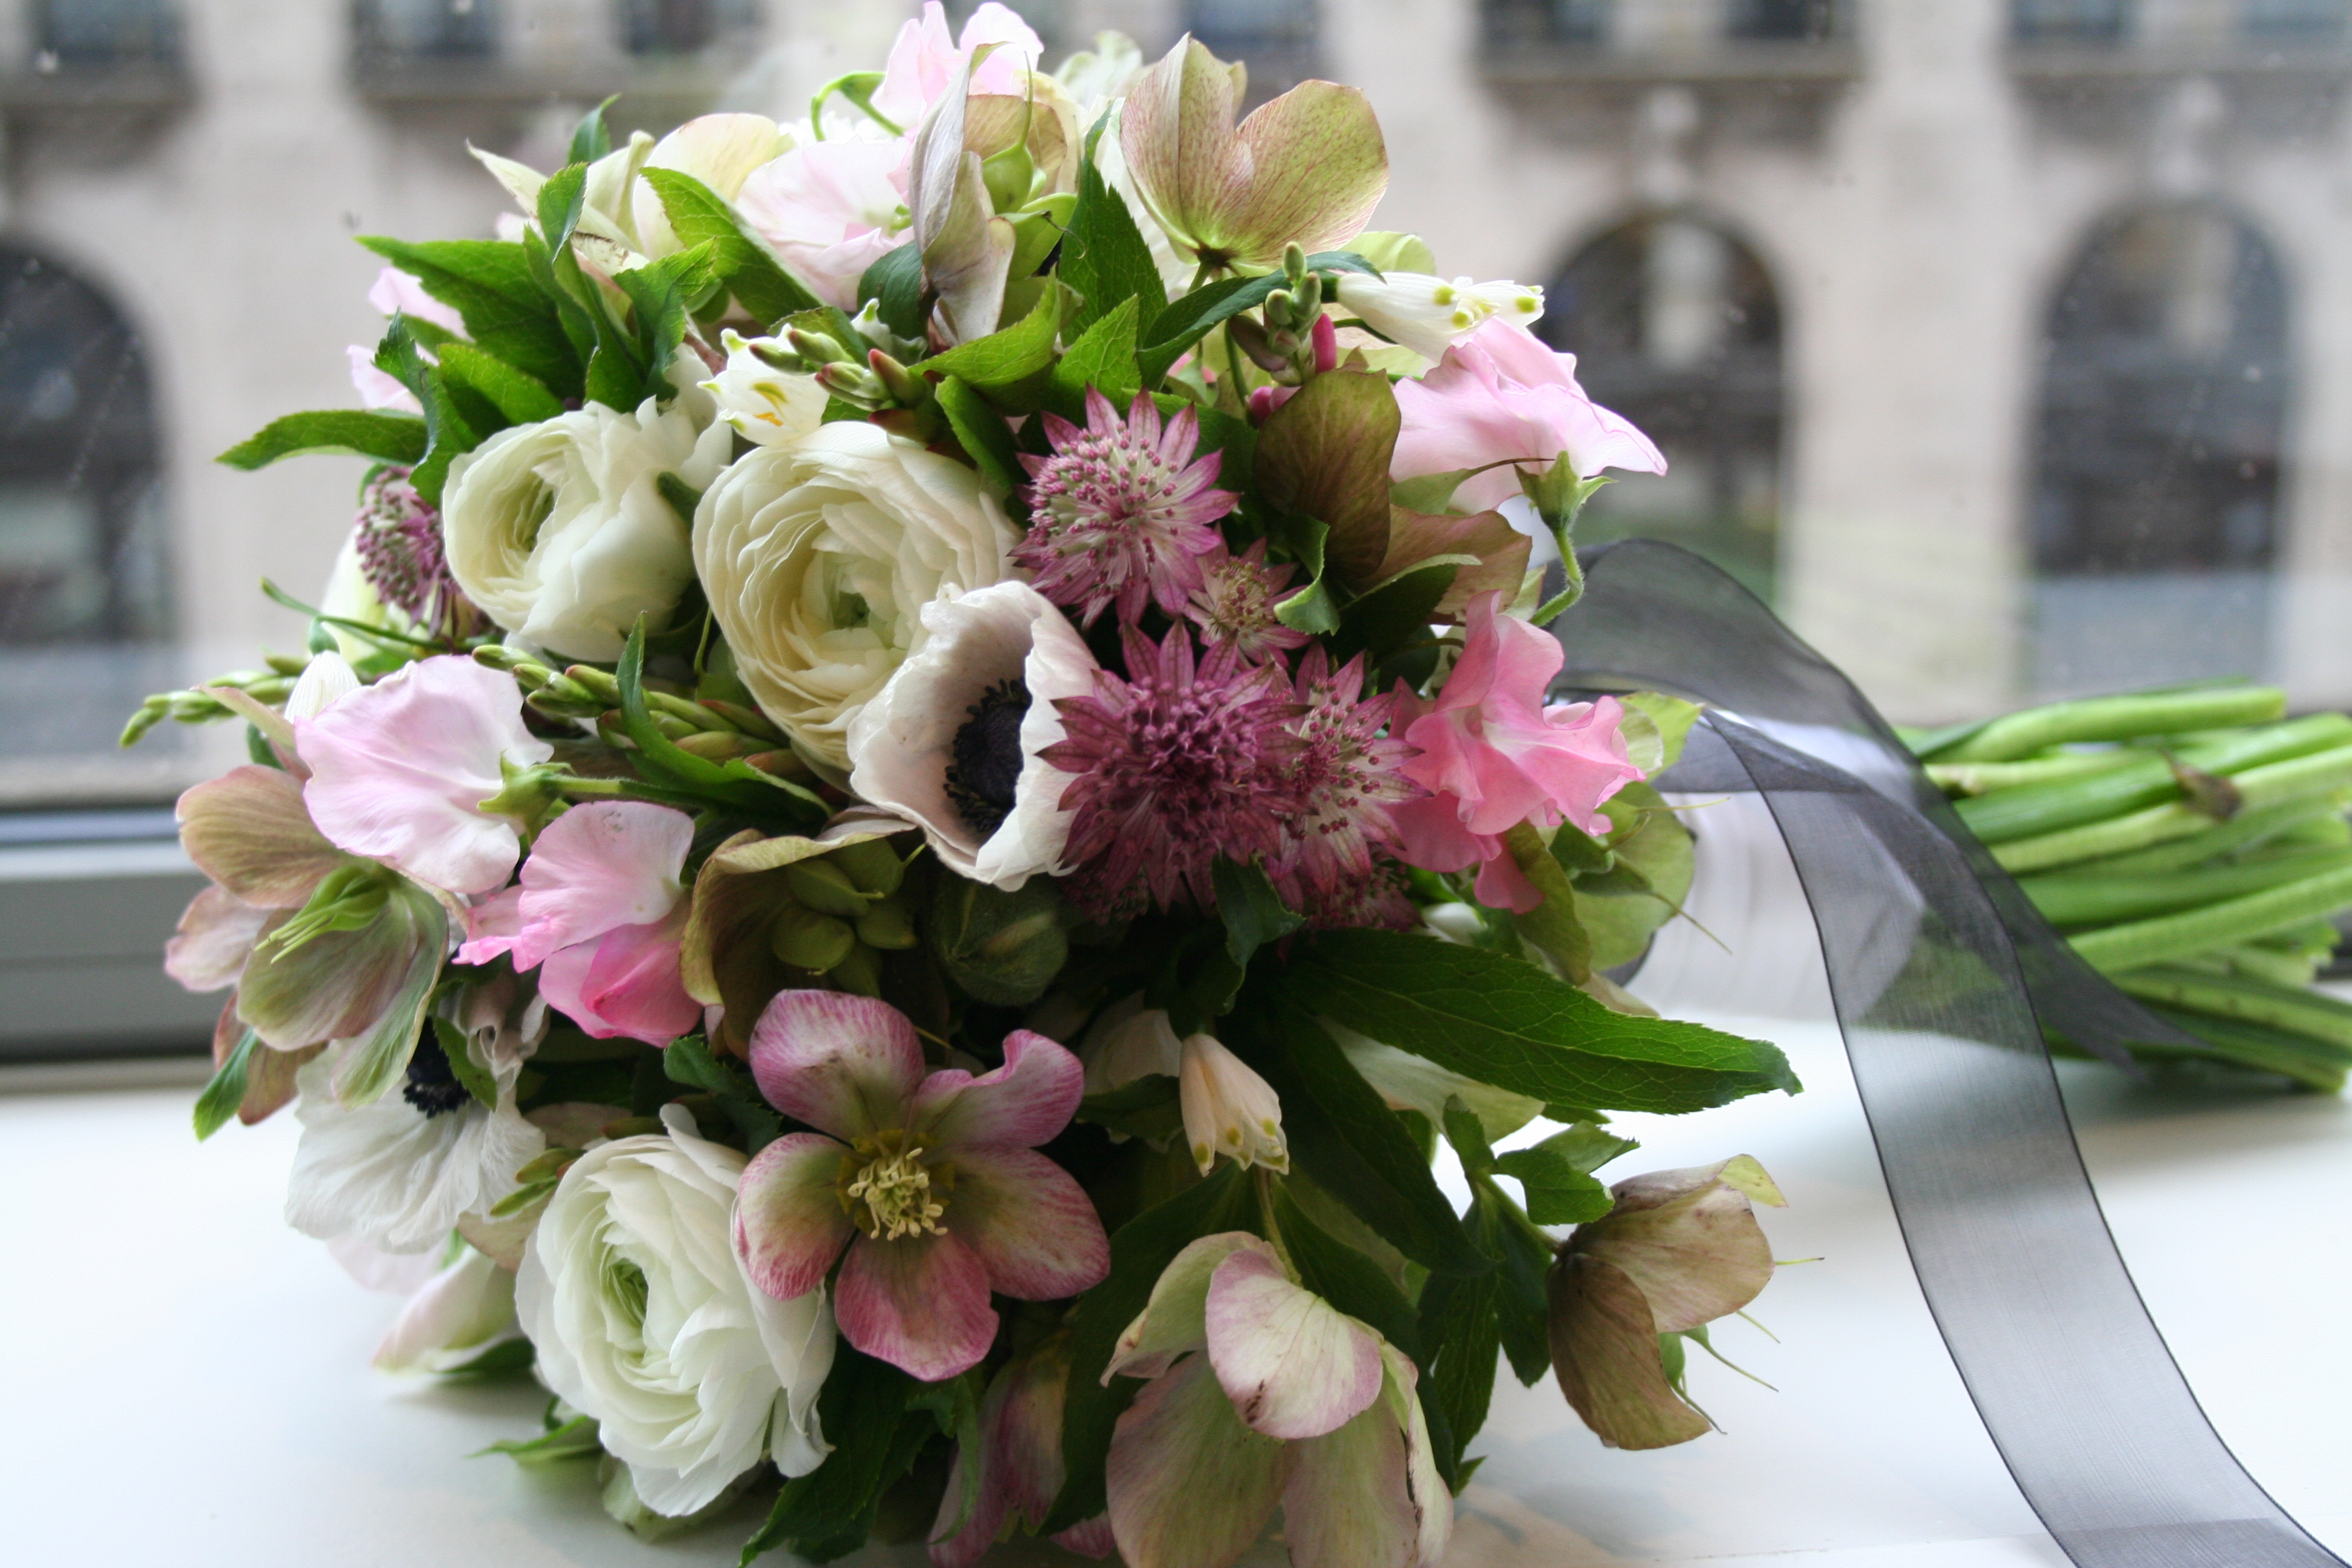 hellebores ranunculus bouquet wedding bridal sweet peas anemones astrantia jen schefft bachelorette chicago wedding